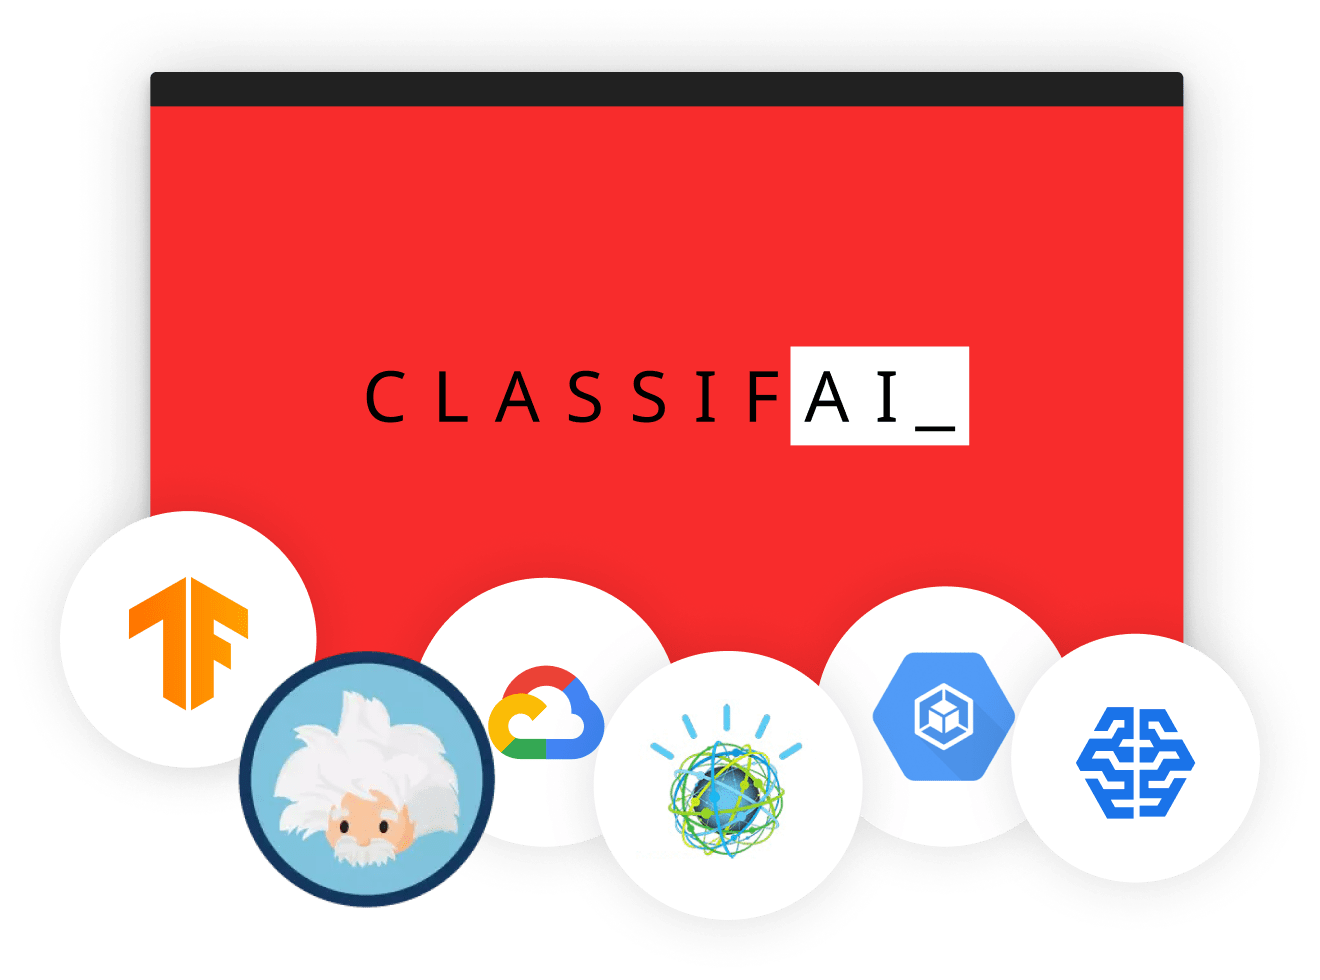 Logos for services ClassifAI will integrate with in the future, such as Google Cloud AI, Amazon SageMaker AI, Einstein AI, TensorFlow, and other emerging technologies.